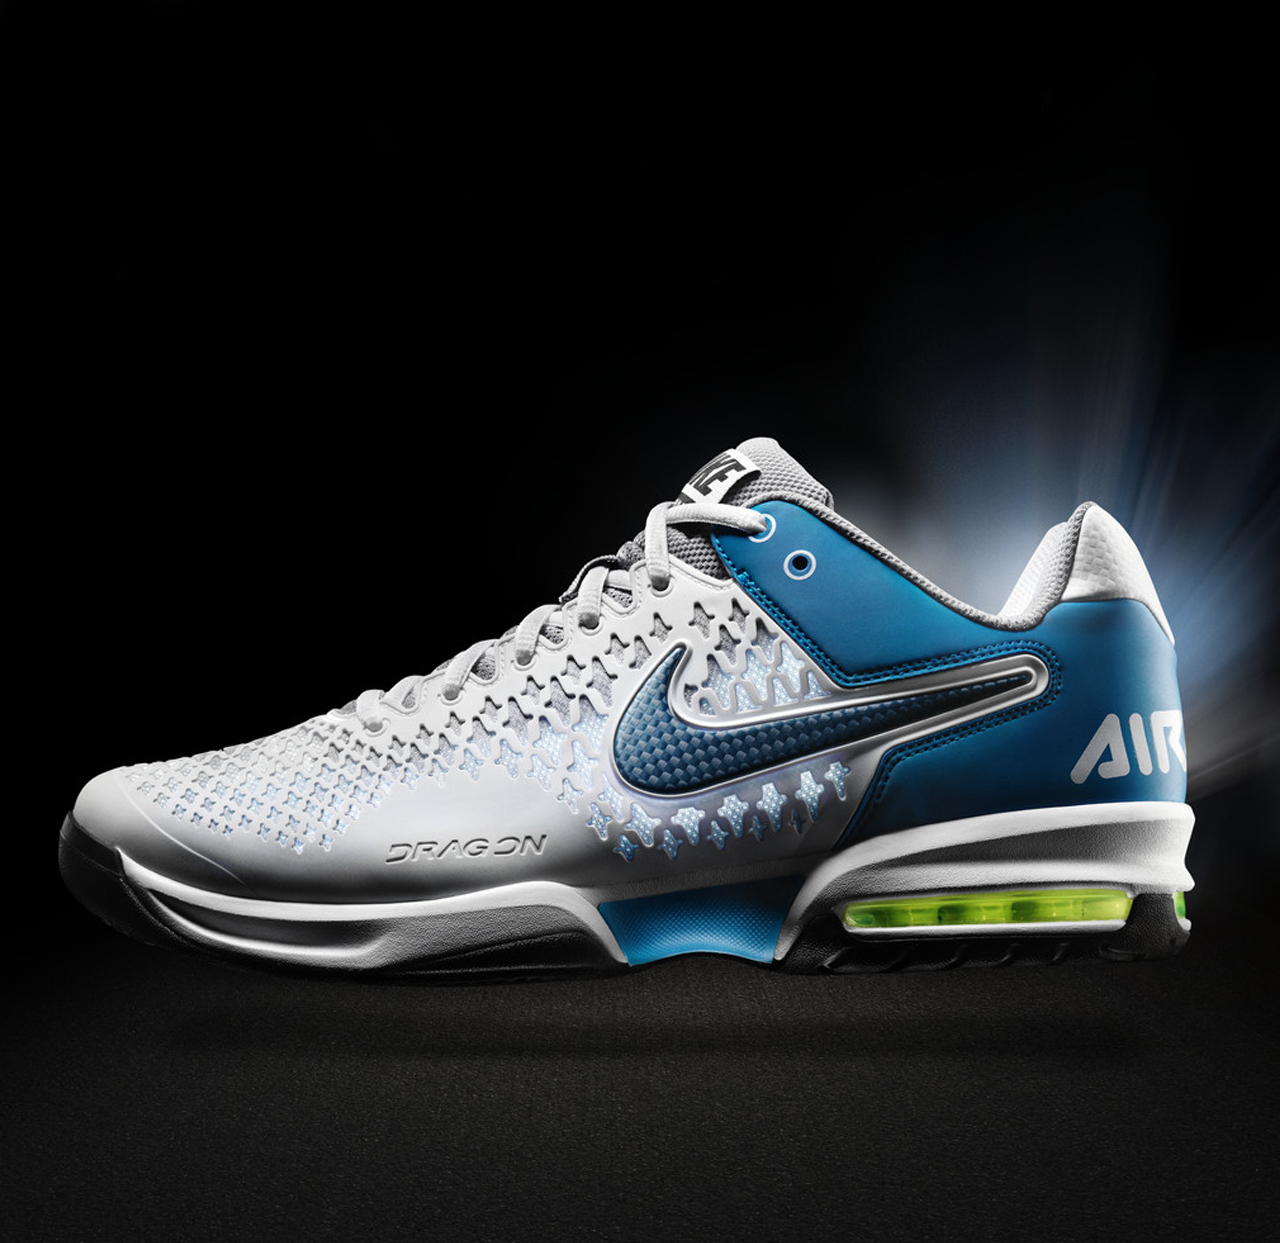 Nike Del Del Nike Potro Chaussures Chaussures culJTK13F